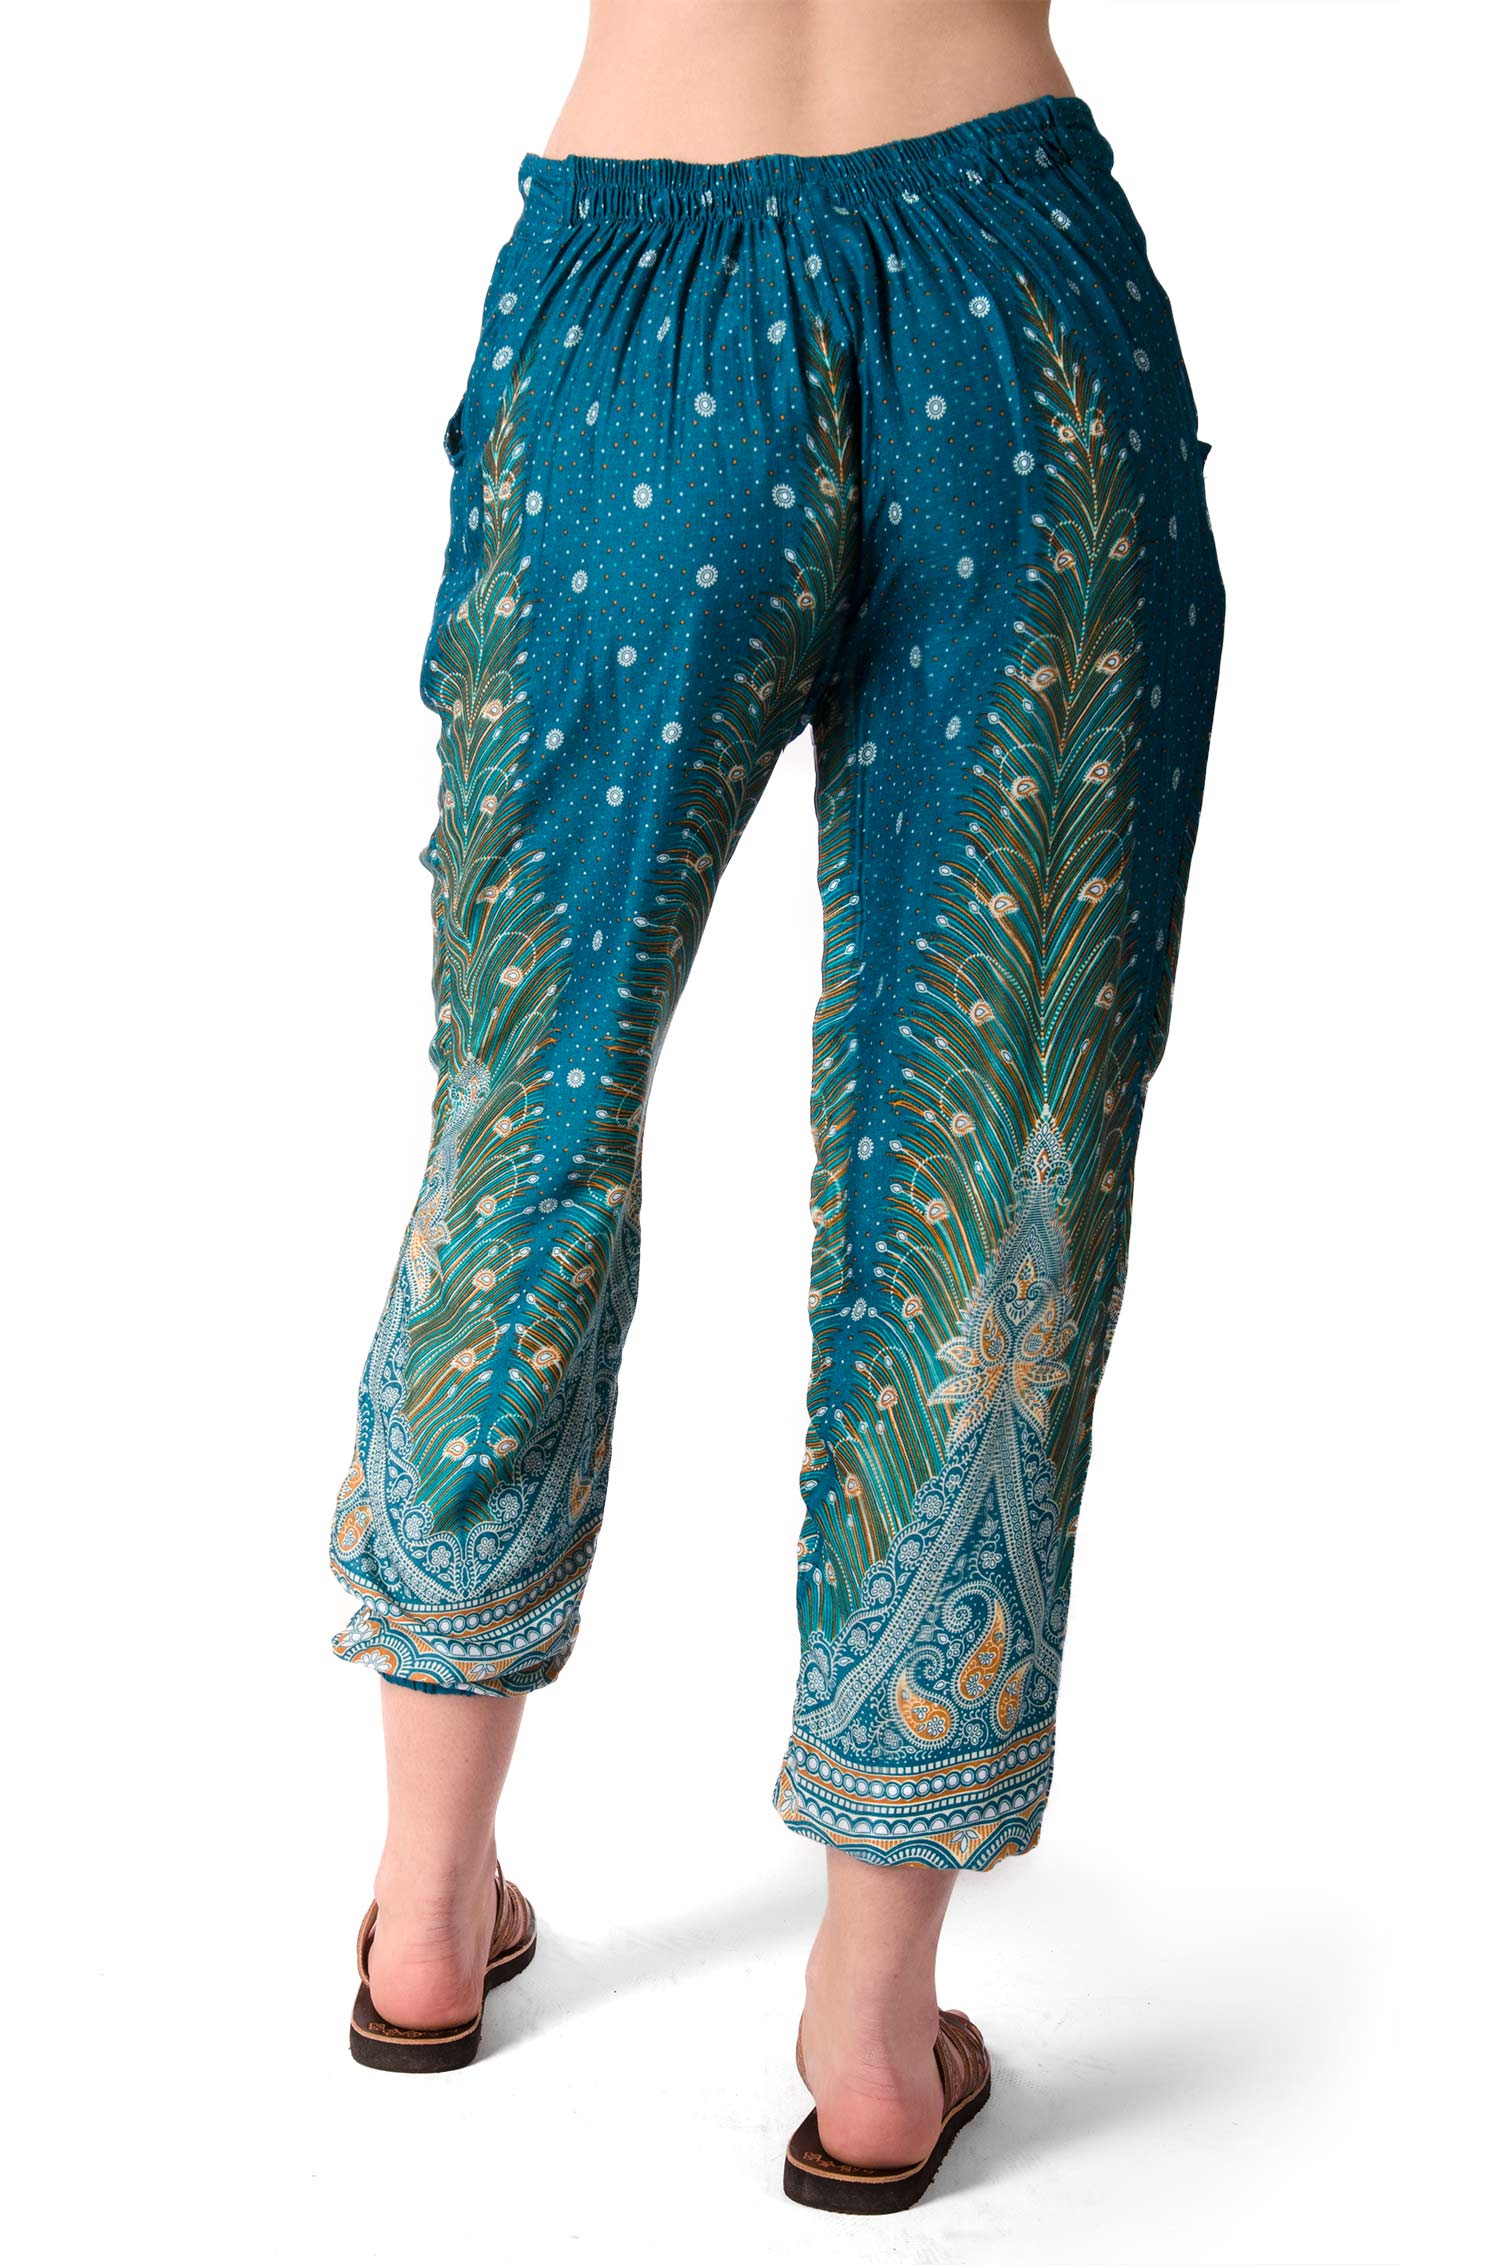 Peacock Print Capri Pants - Teal Multi - 4473G